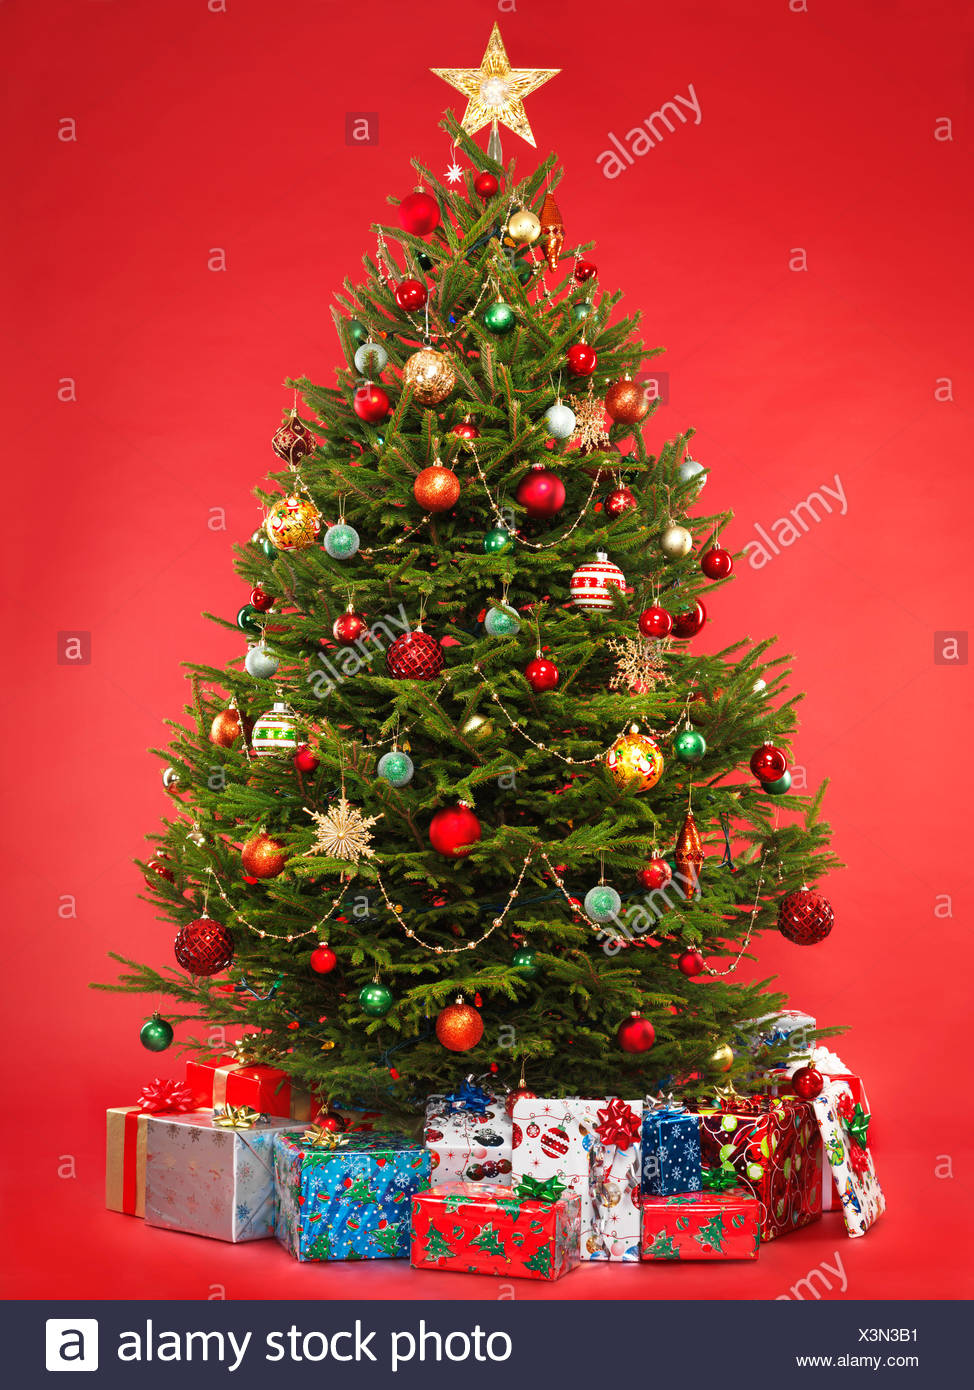 Decorated Christmas tree surrounded with colorful gifts - Stock Image